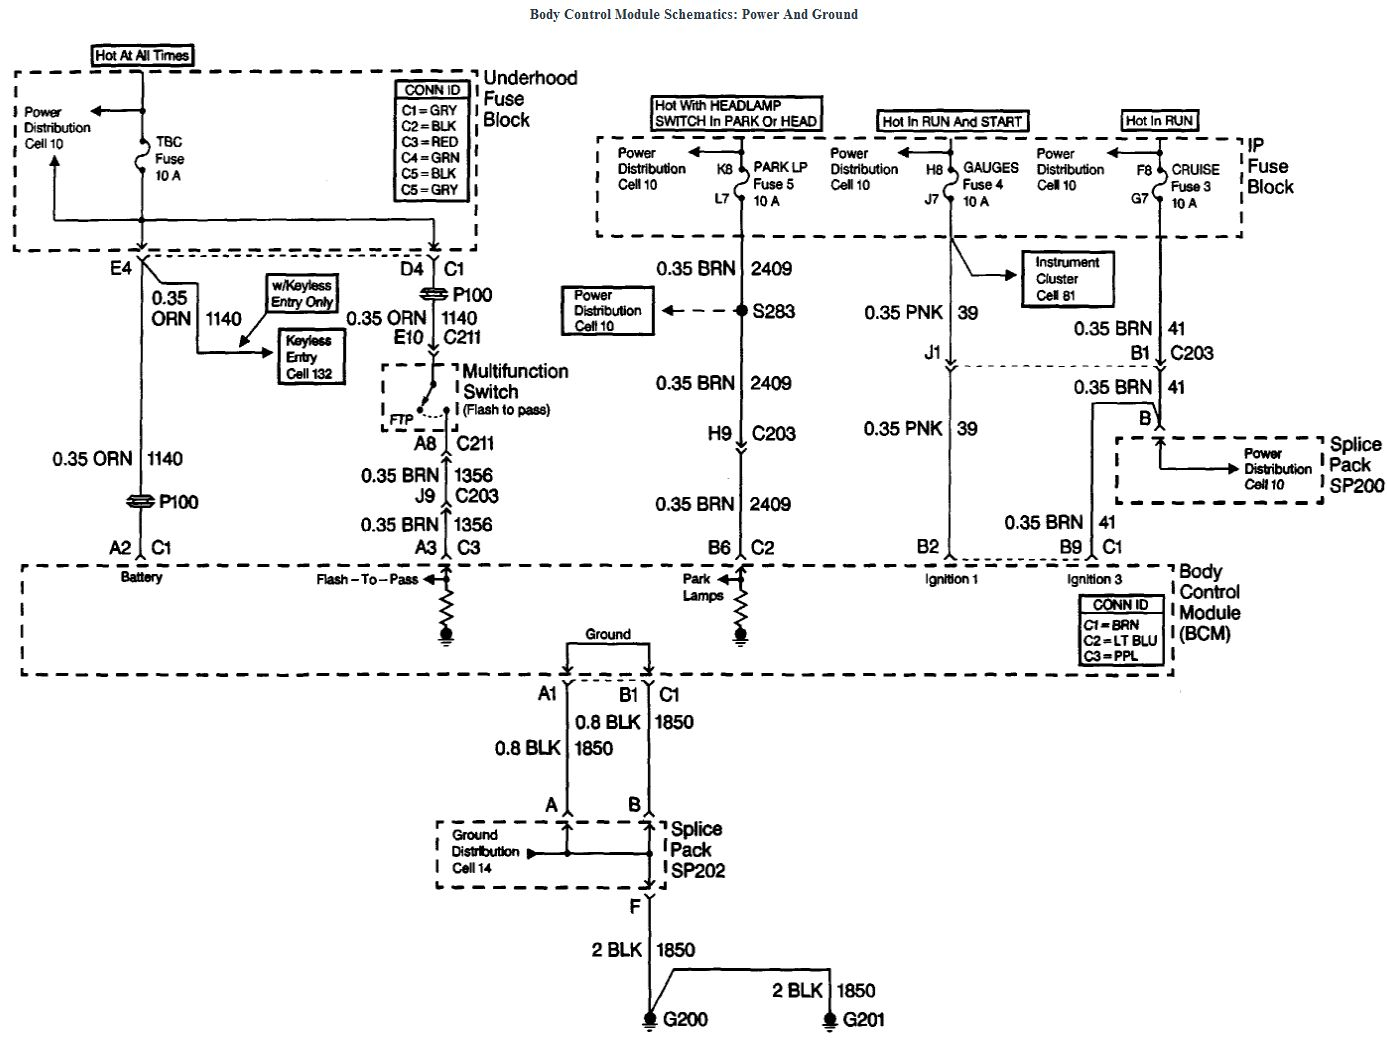 8703d1328462246 looking diagram info body control module pwr_body_cntl_mod?resize\\\=665%2C505\\\&ssl\\\=1 wiring diagram for instrument cluster plug ls1tech camaro and on Chevy Silverado Wiring Diagram at honlapkeszites.co